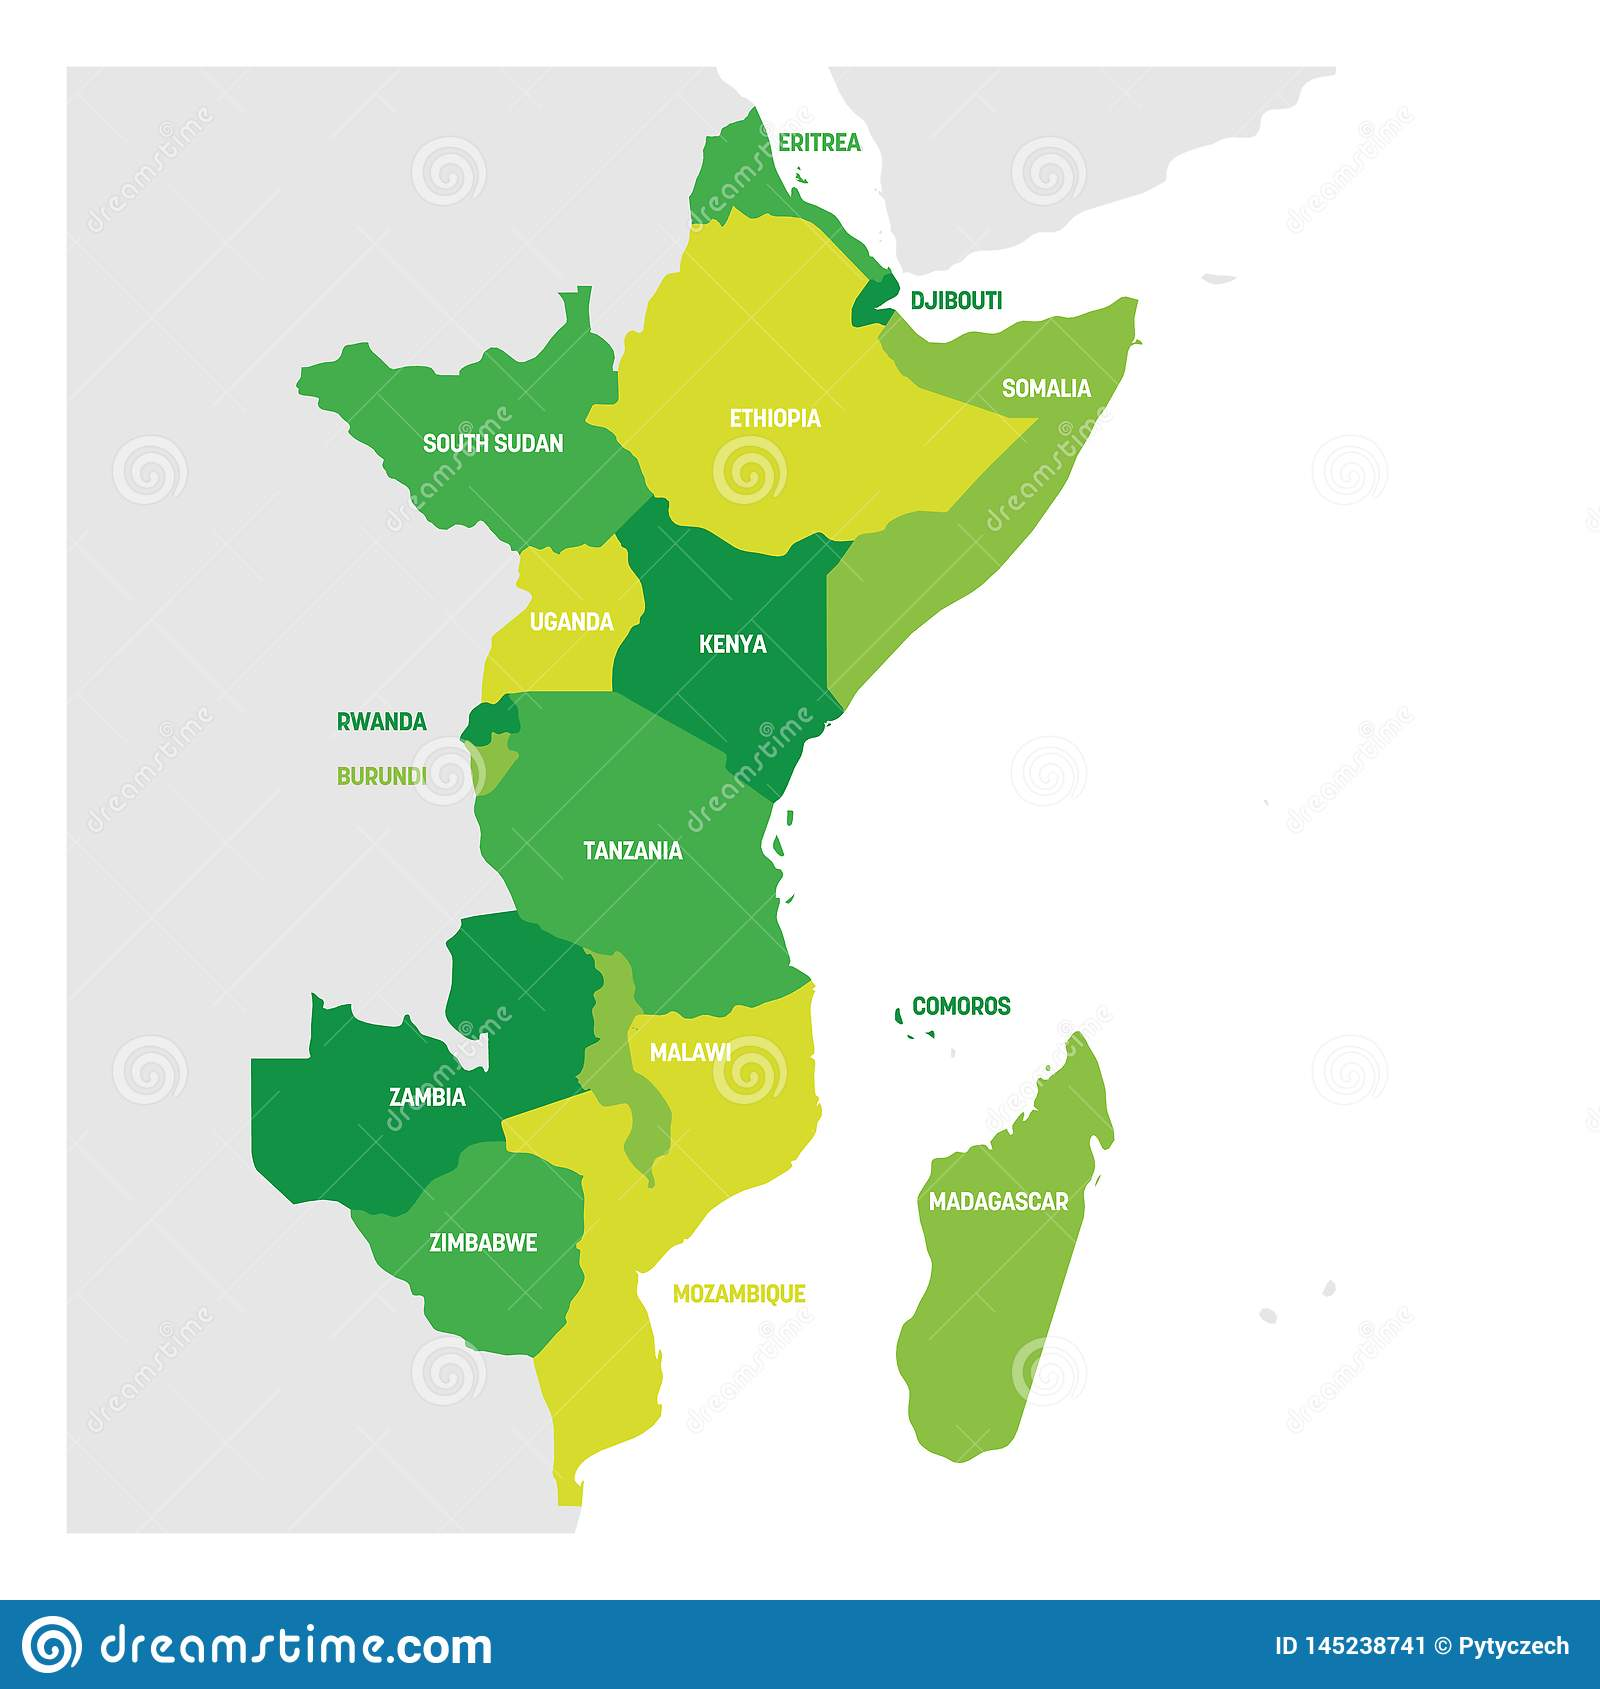 Map Of Eastern African Countries.East Africa Region Map Of Countries In Eastern Africa